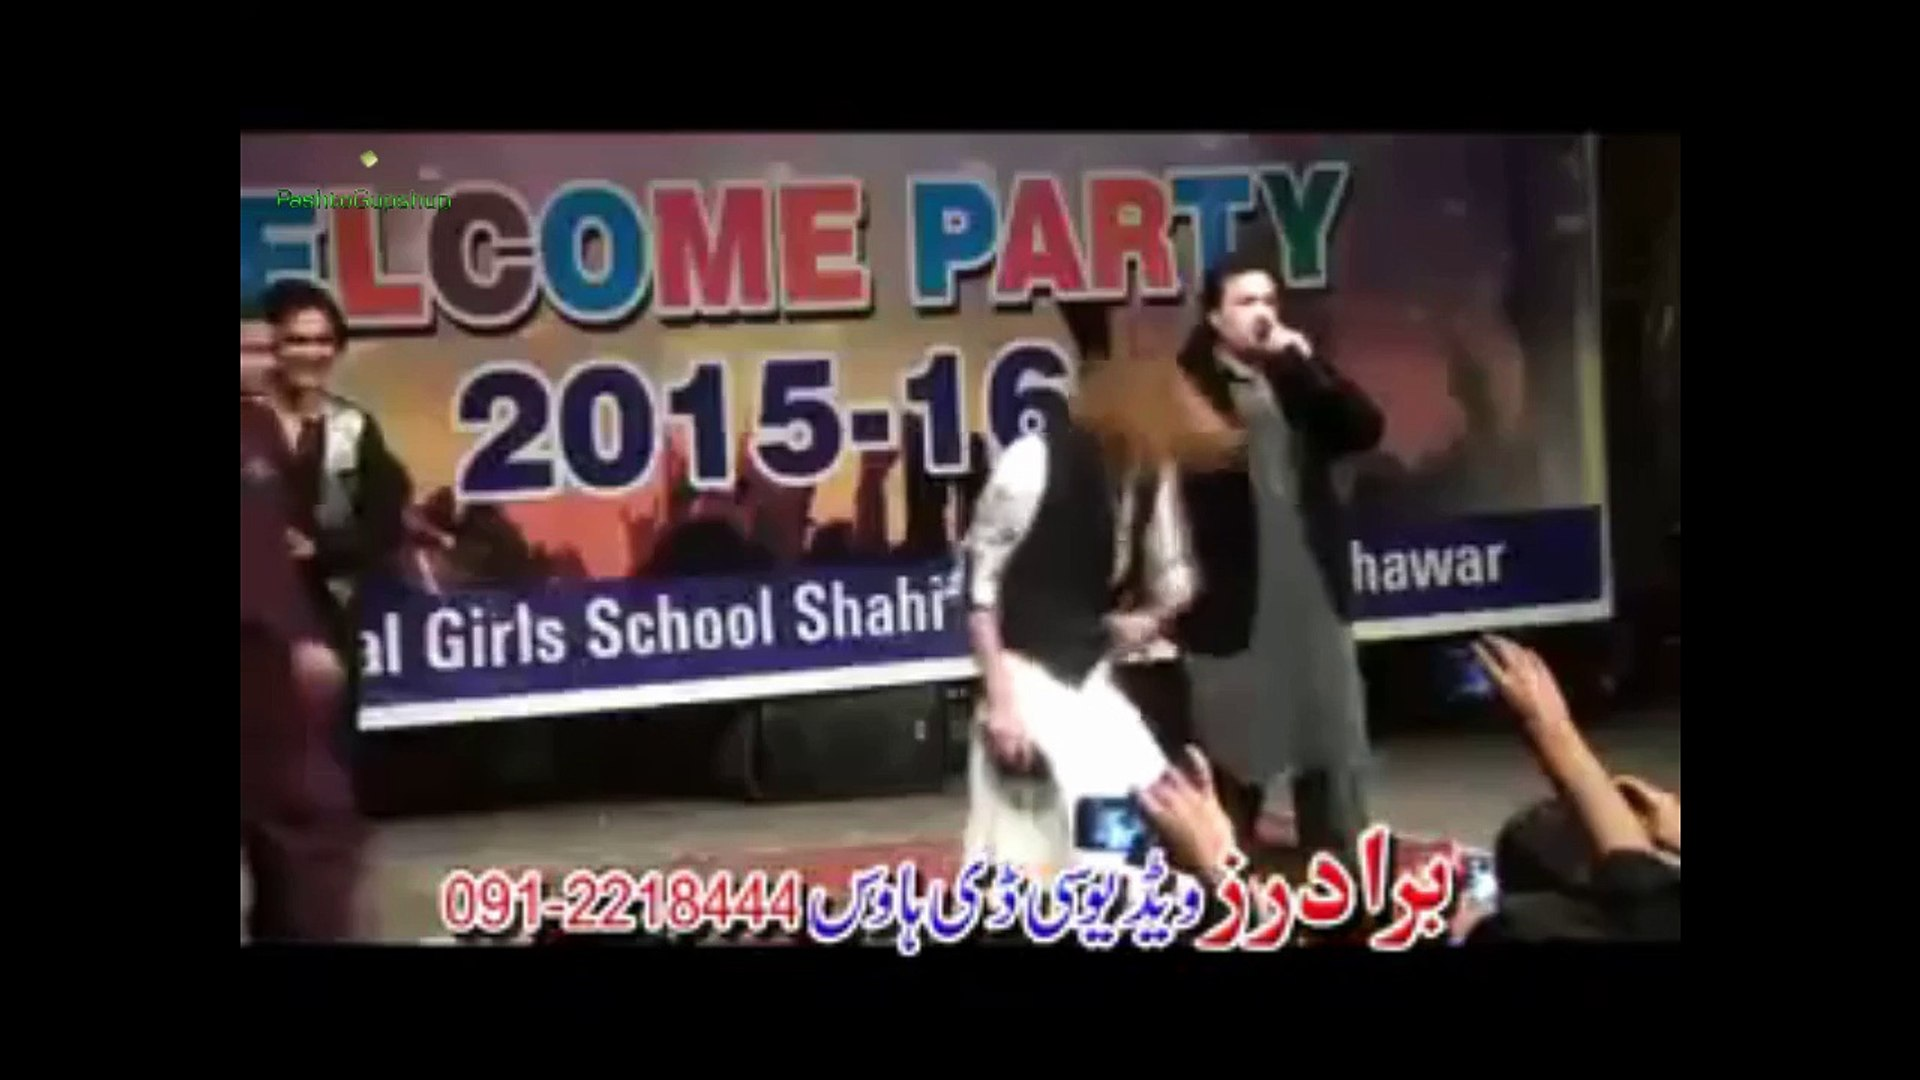 Yaar Me Pa Baano - Raees Bacha 2015 Song - Pashto Attan Song 2015 - Pashto New Songs 2015